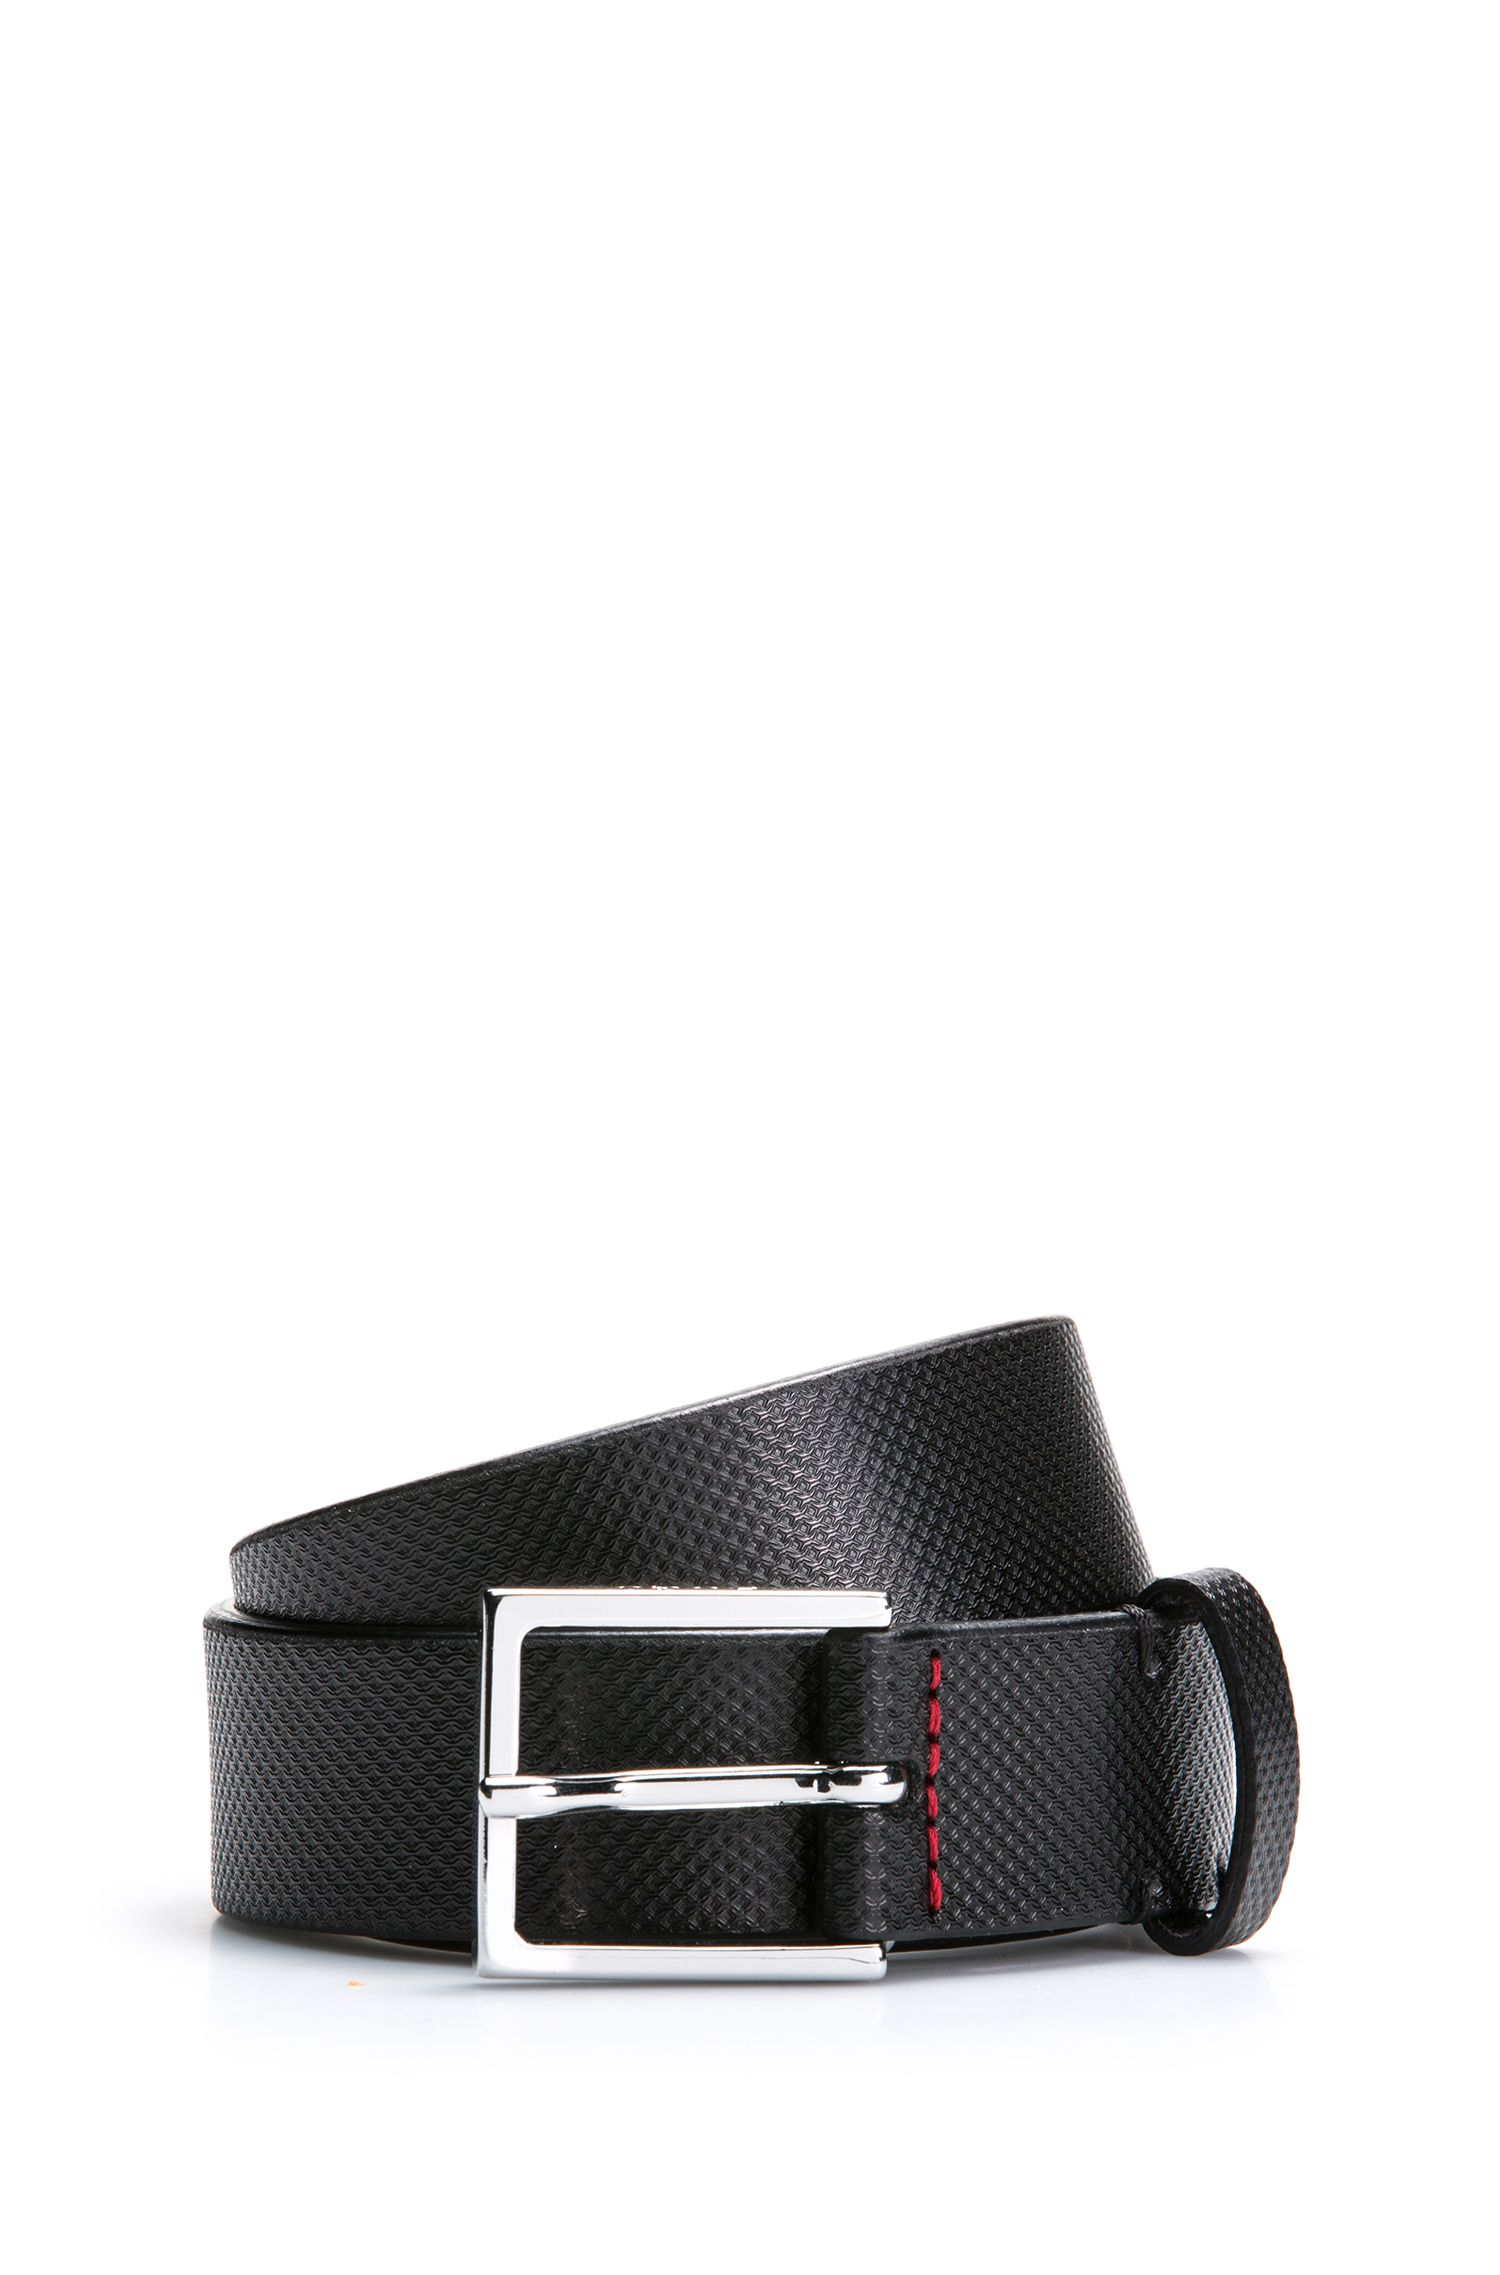 Leather belt with embossed detailing